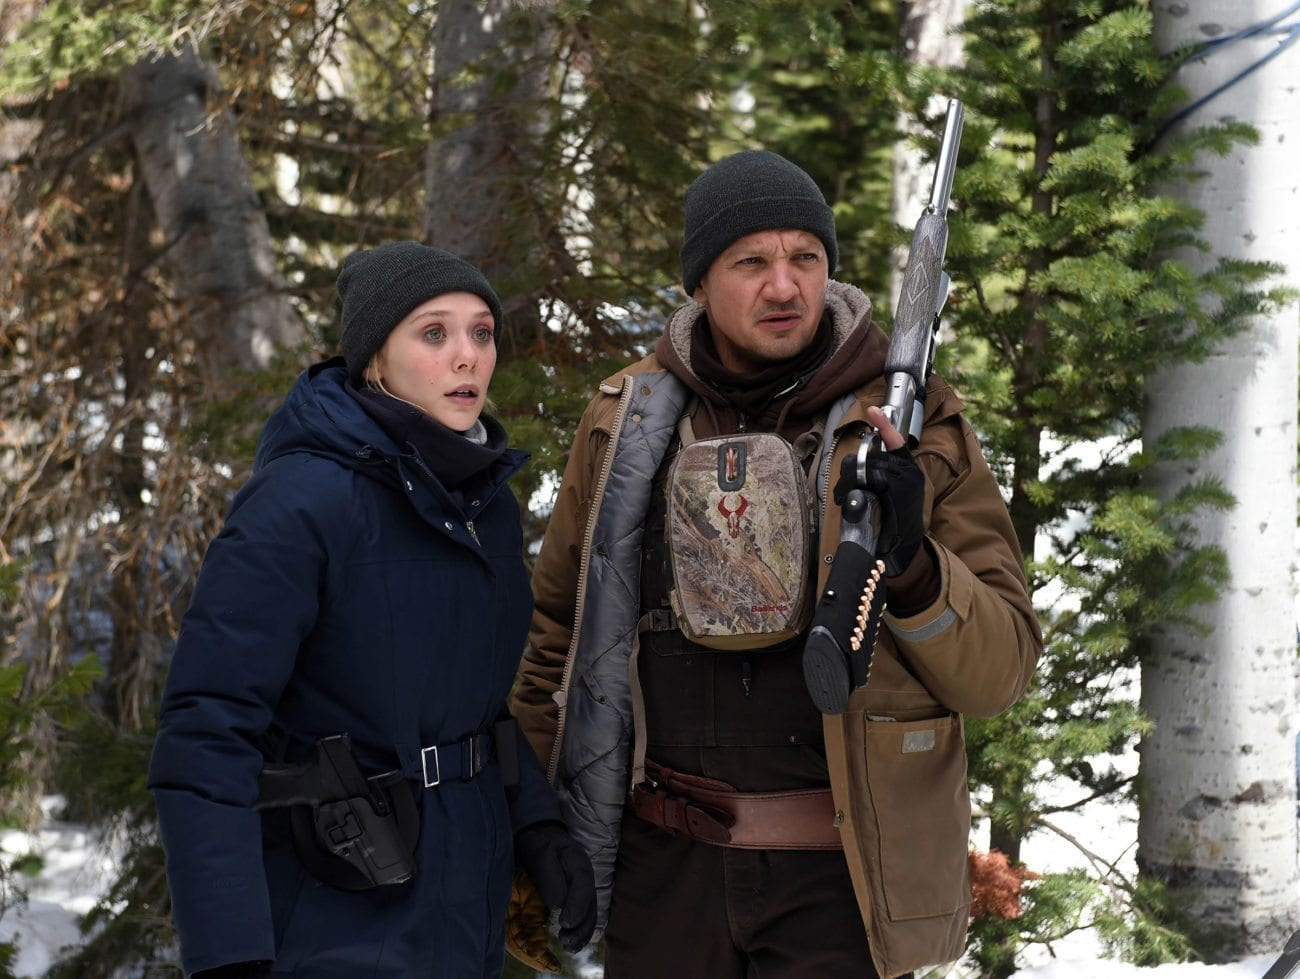 The Weinstein Company has debuted the first trailer for Taylor Sheridan's 'Wind River', set for theatrical release this August.